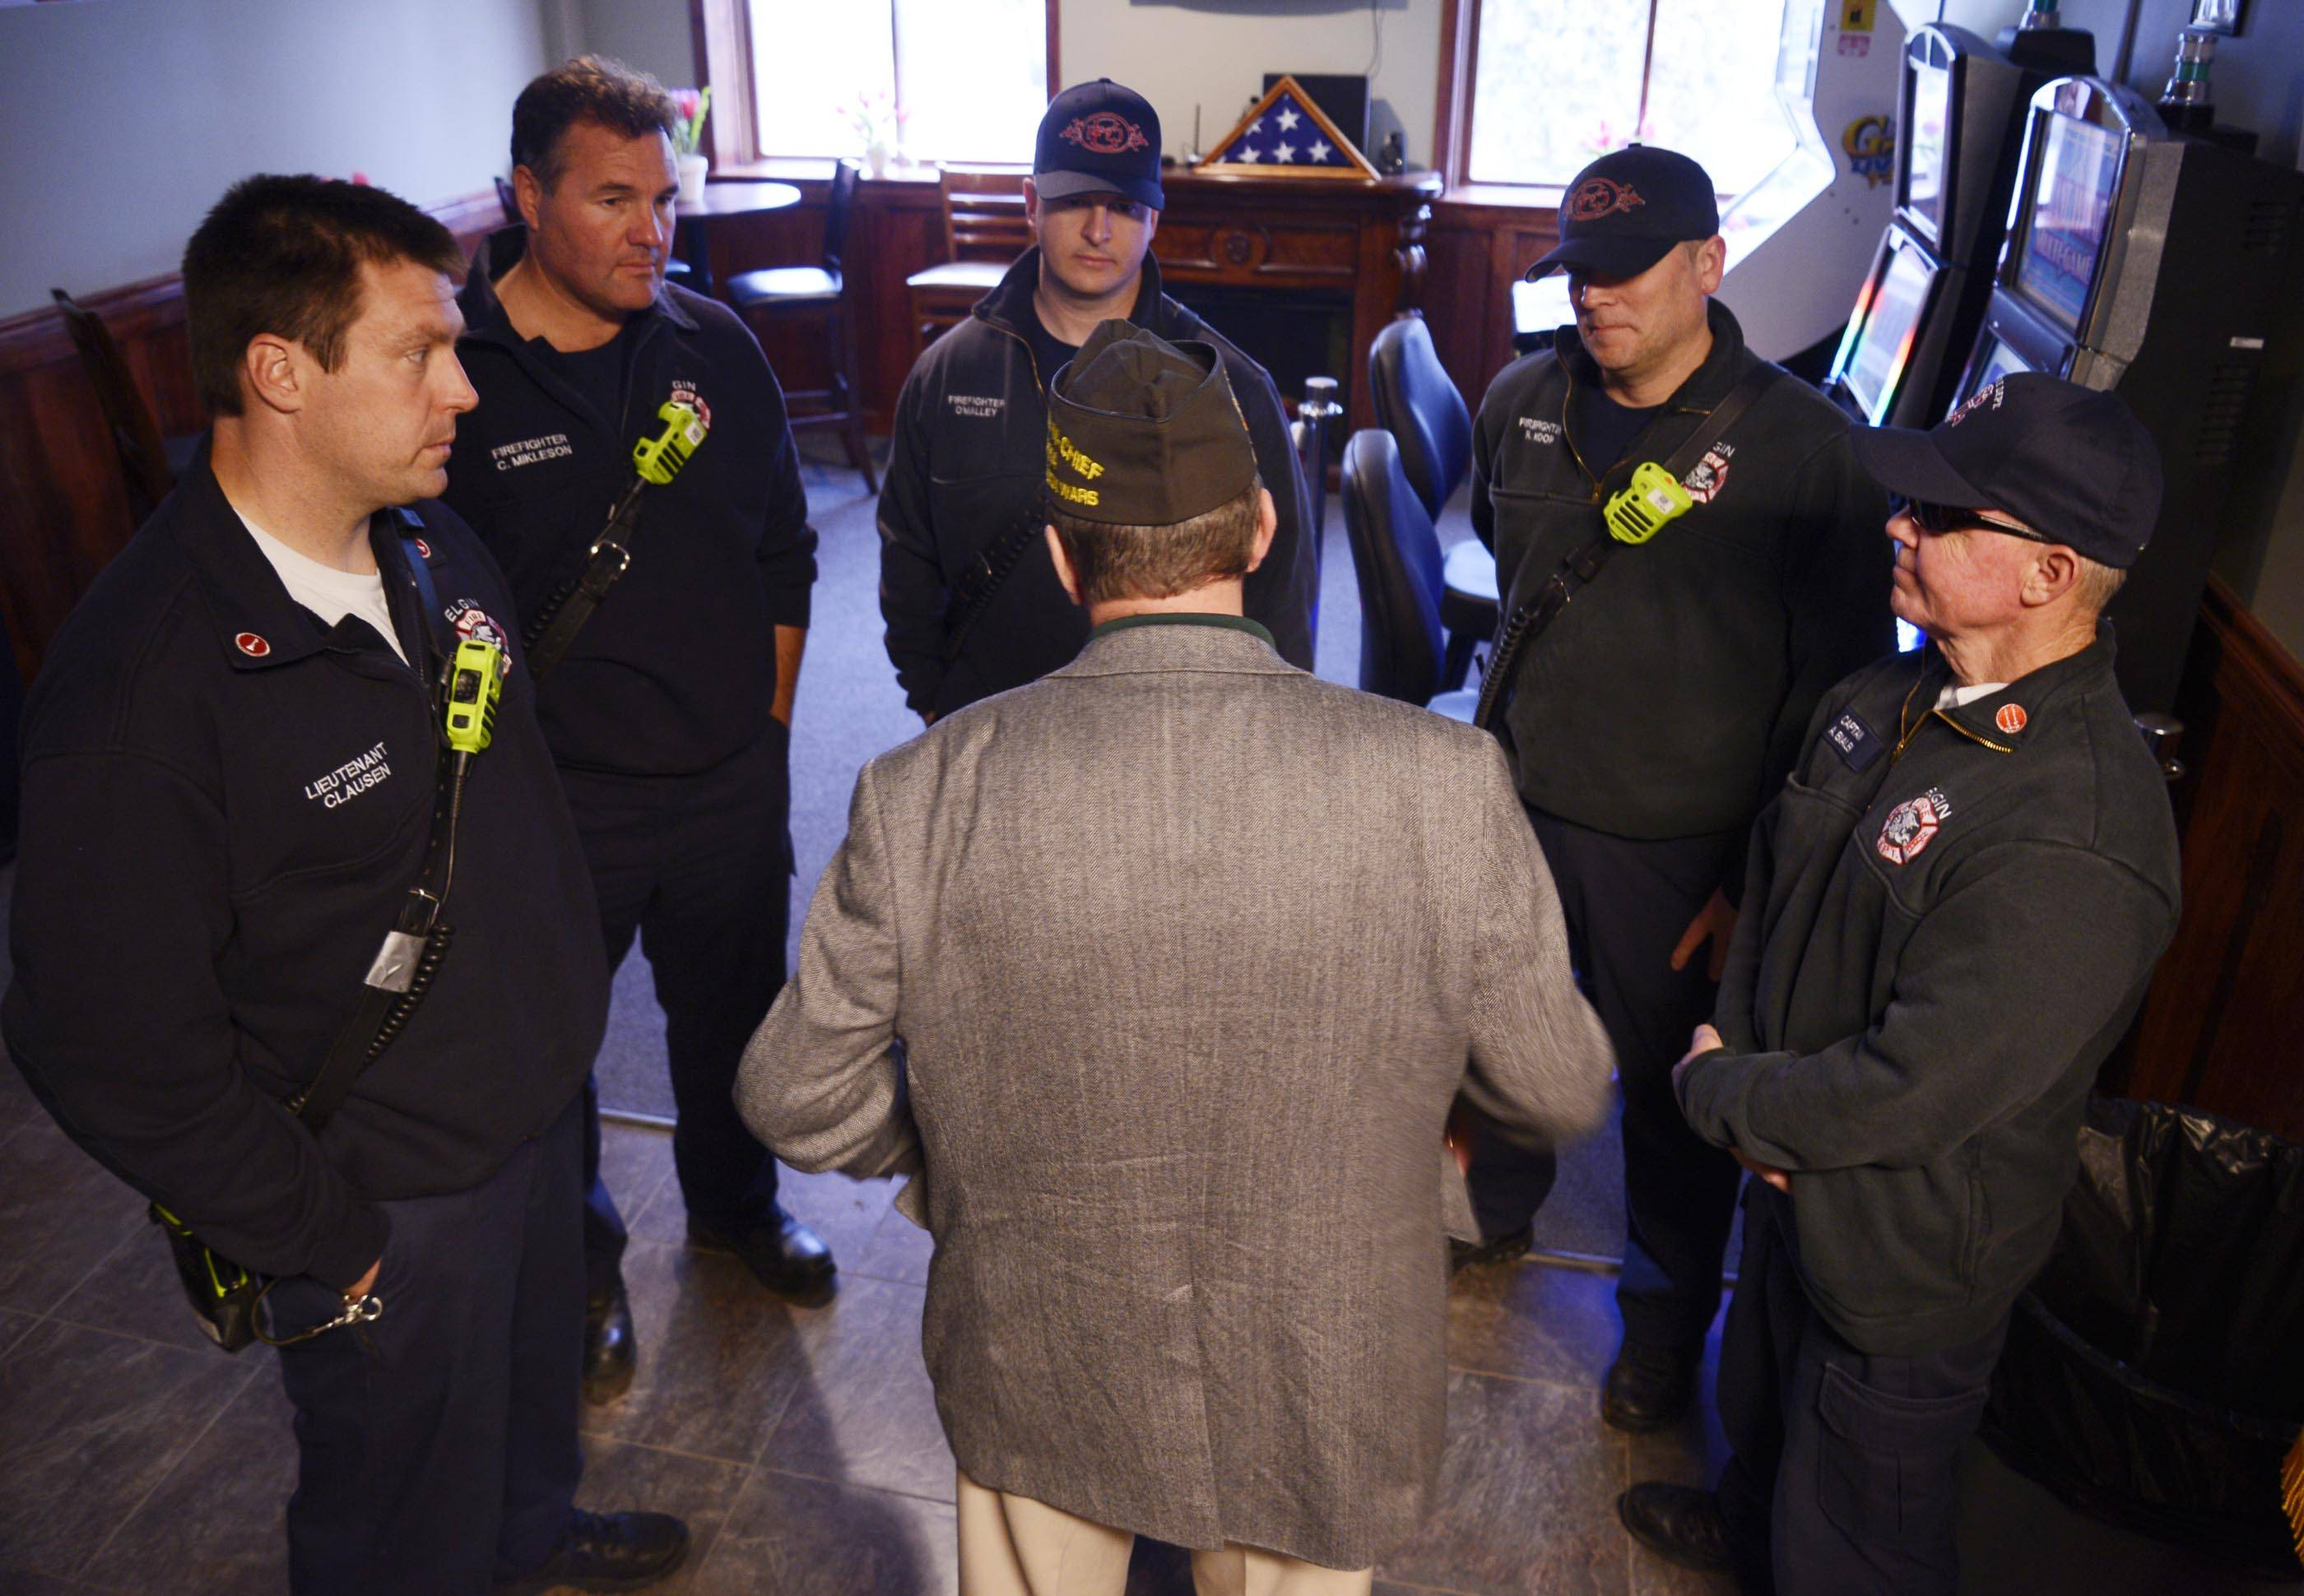 John Starks/jstarks@dailyherald.comBill Thien, Commander-in Chief of the Veterans of Foreign Wars of the United States, talks with a group of Elgin firefighters at the Elgin Watch City VFW Post 1307 Tuesday.